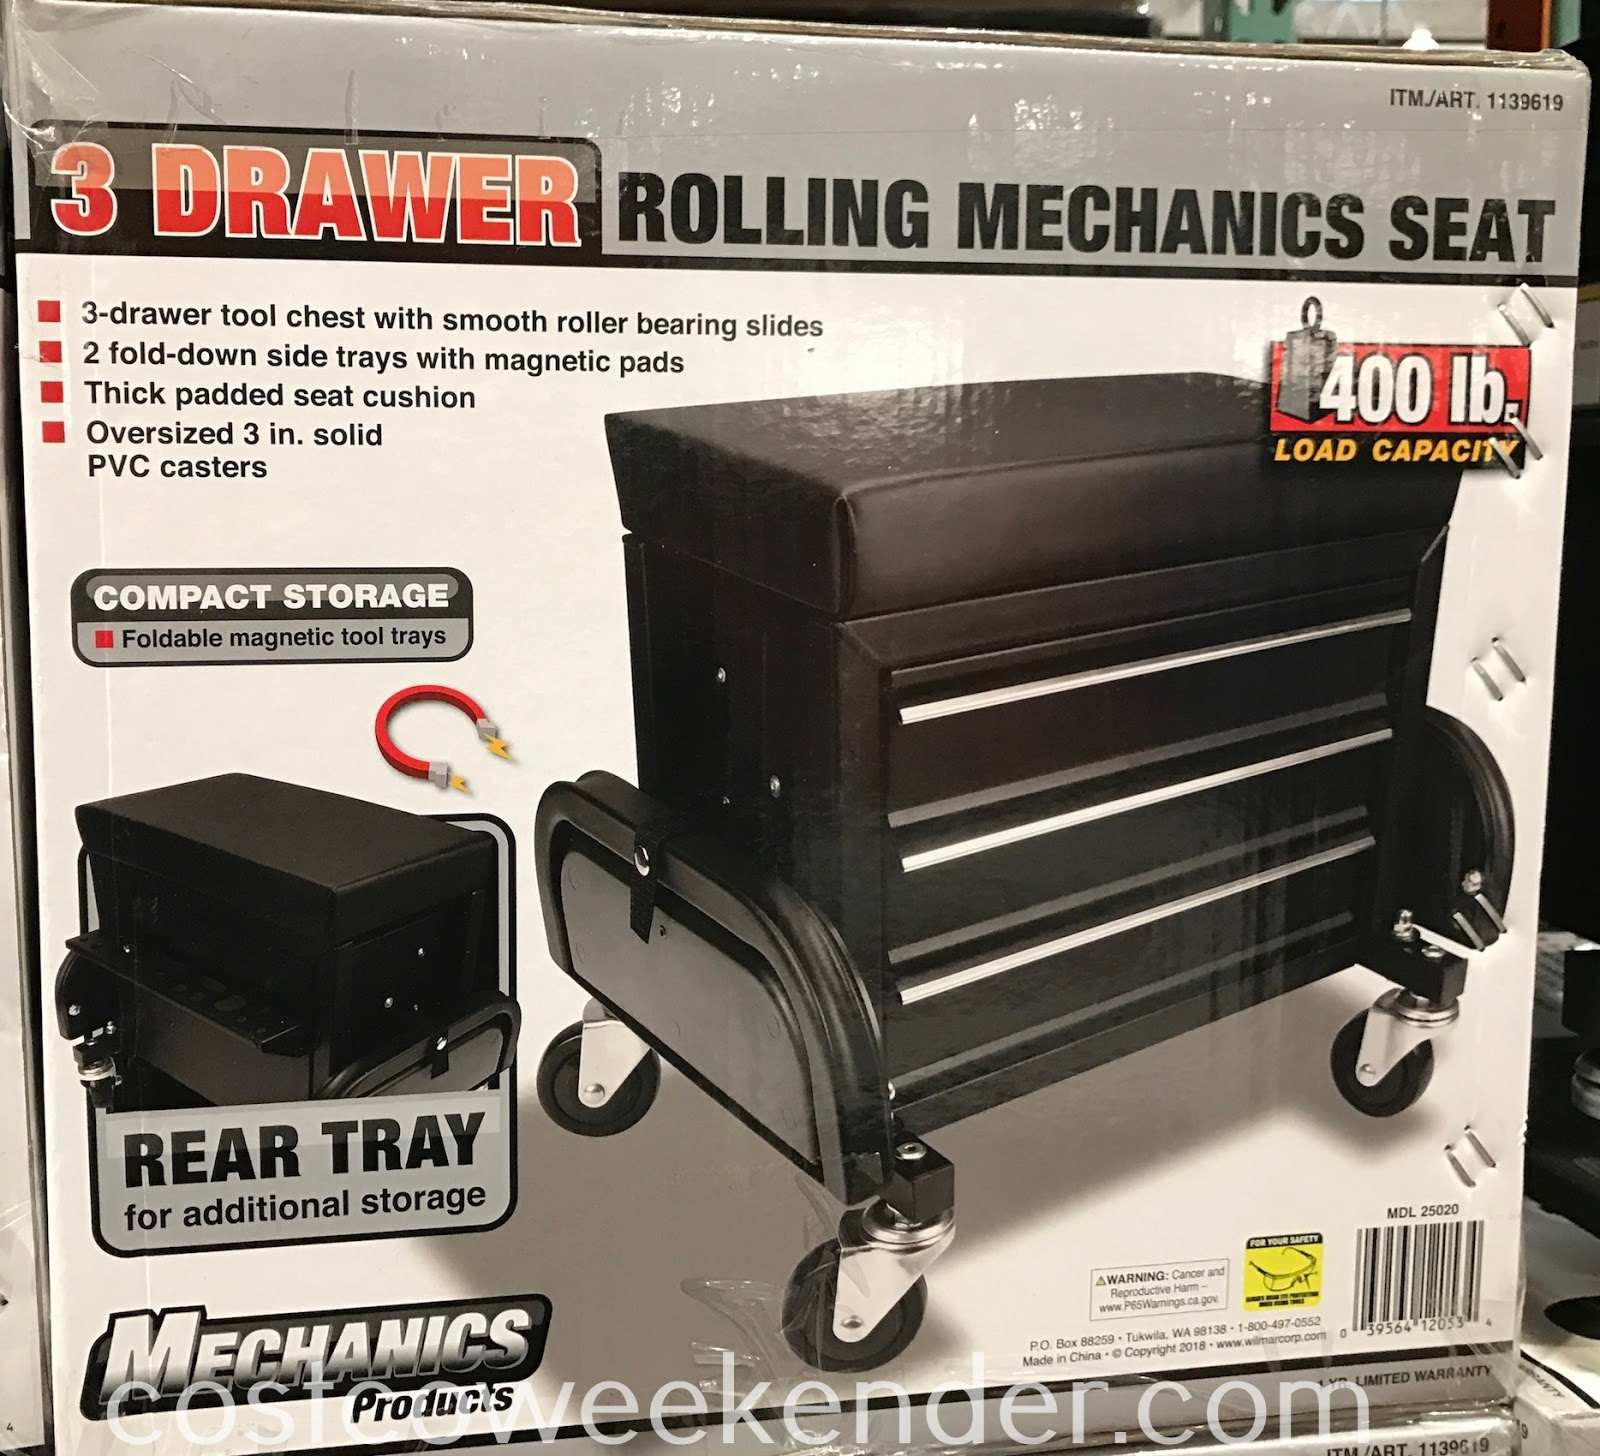 Easily work on your car or in the garage with the 3-Drawer Rolling Mechanics Seat